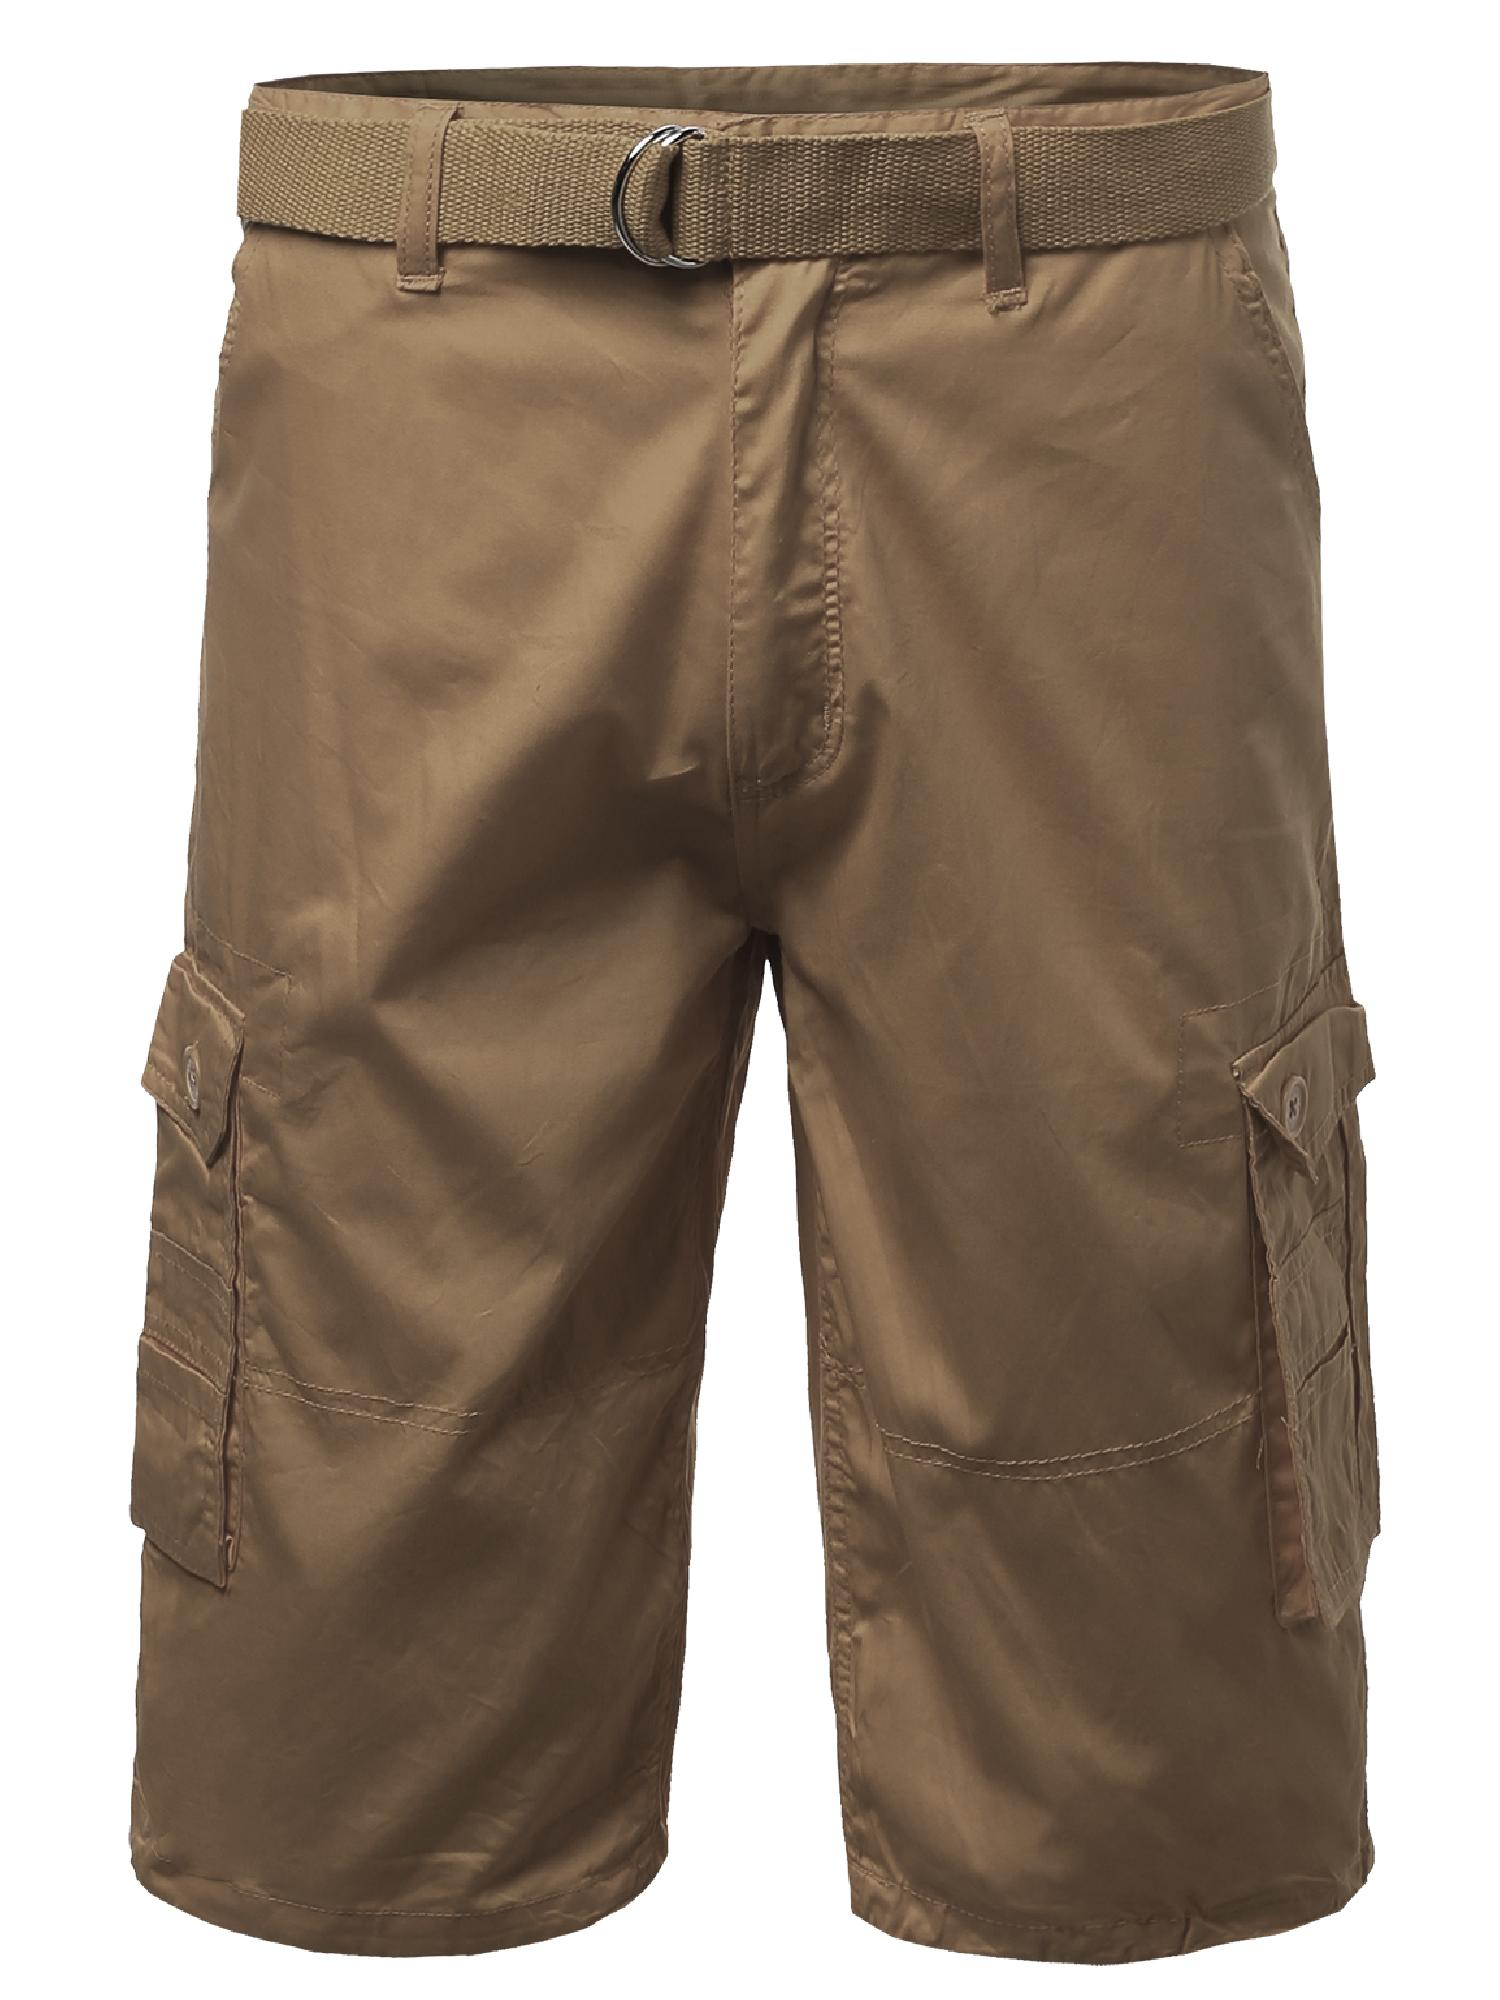 FashionOutfit Men's Basic Solid Detachable Dring Belted Cargo Shorts